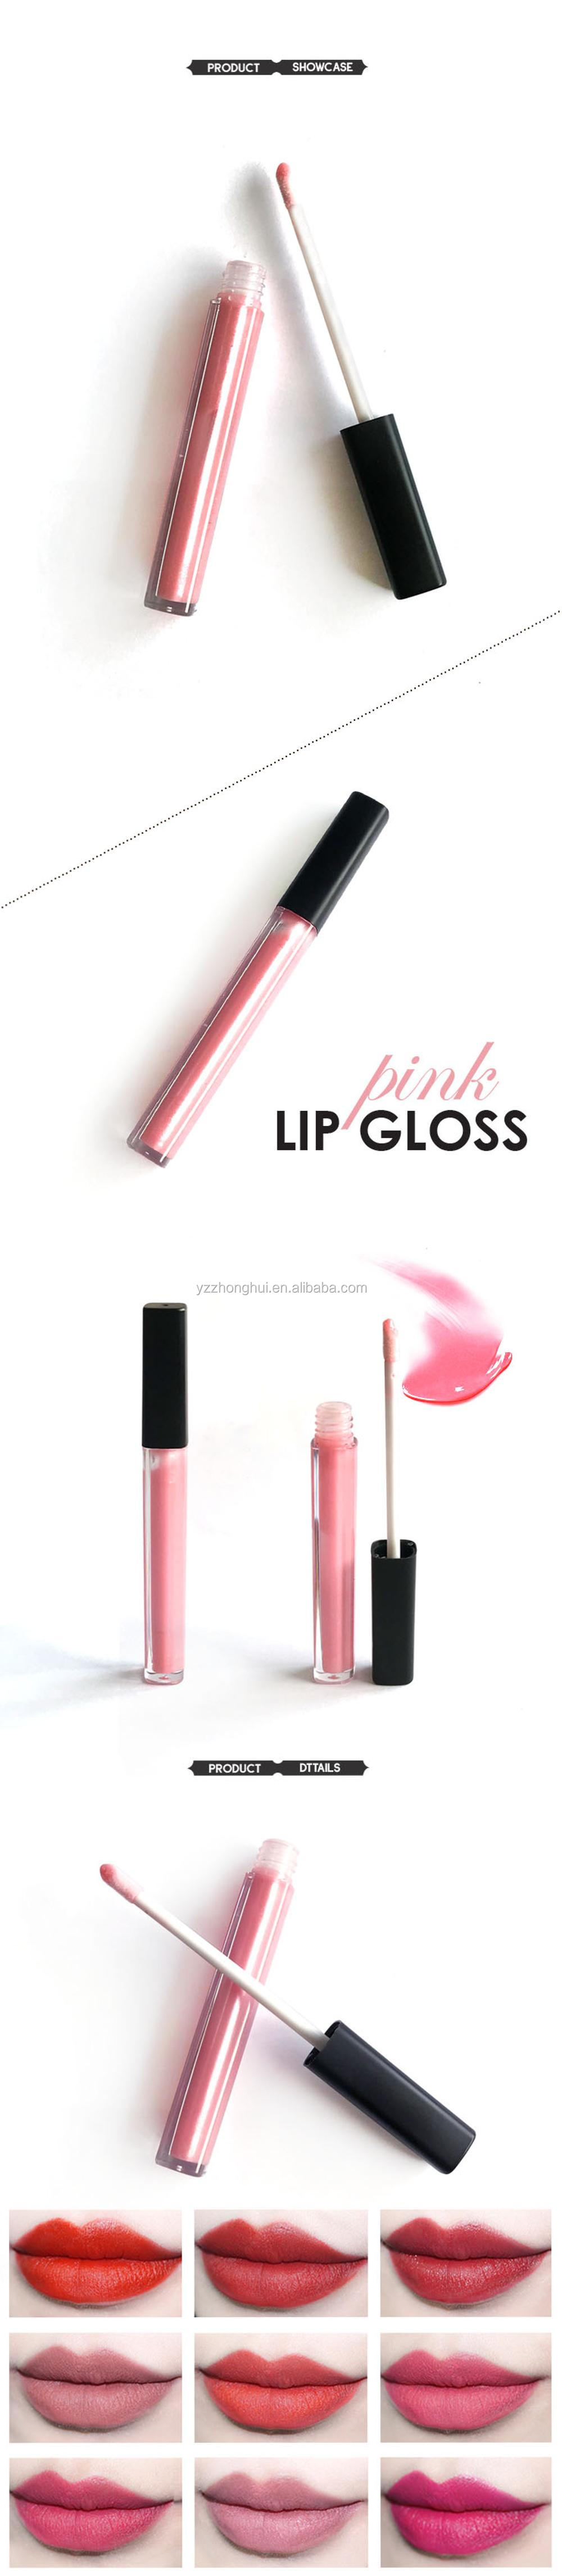 CC36149 Custom your own lip gloss private label lip gloss packaging